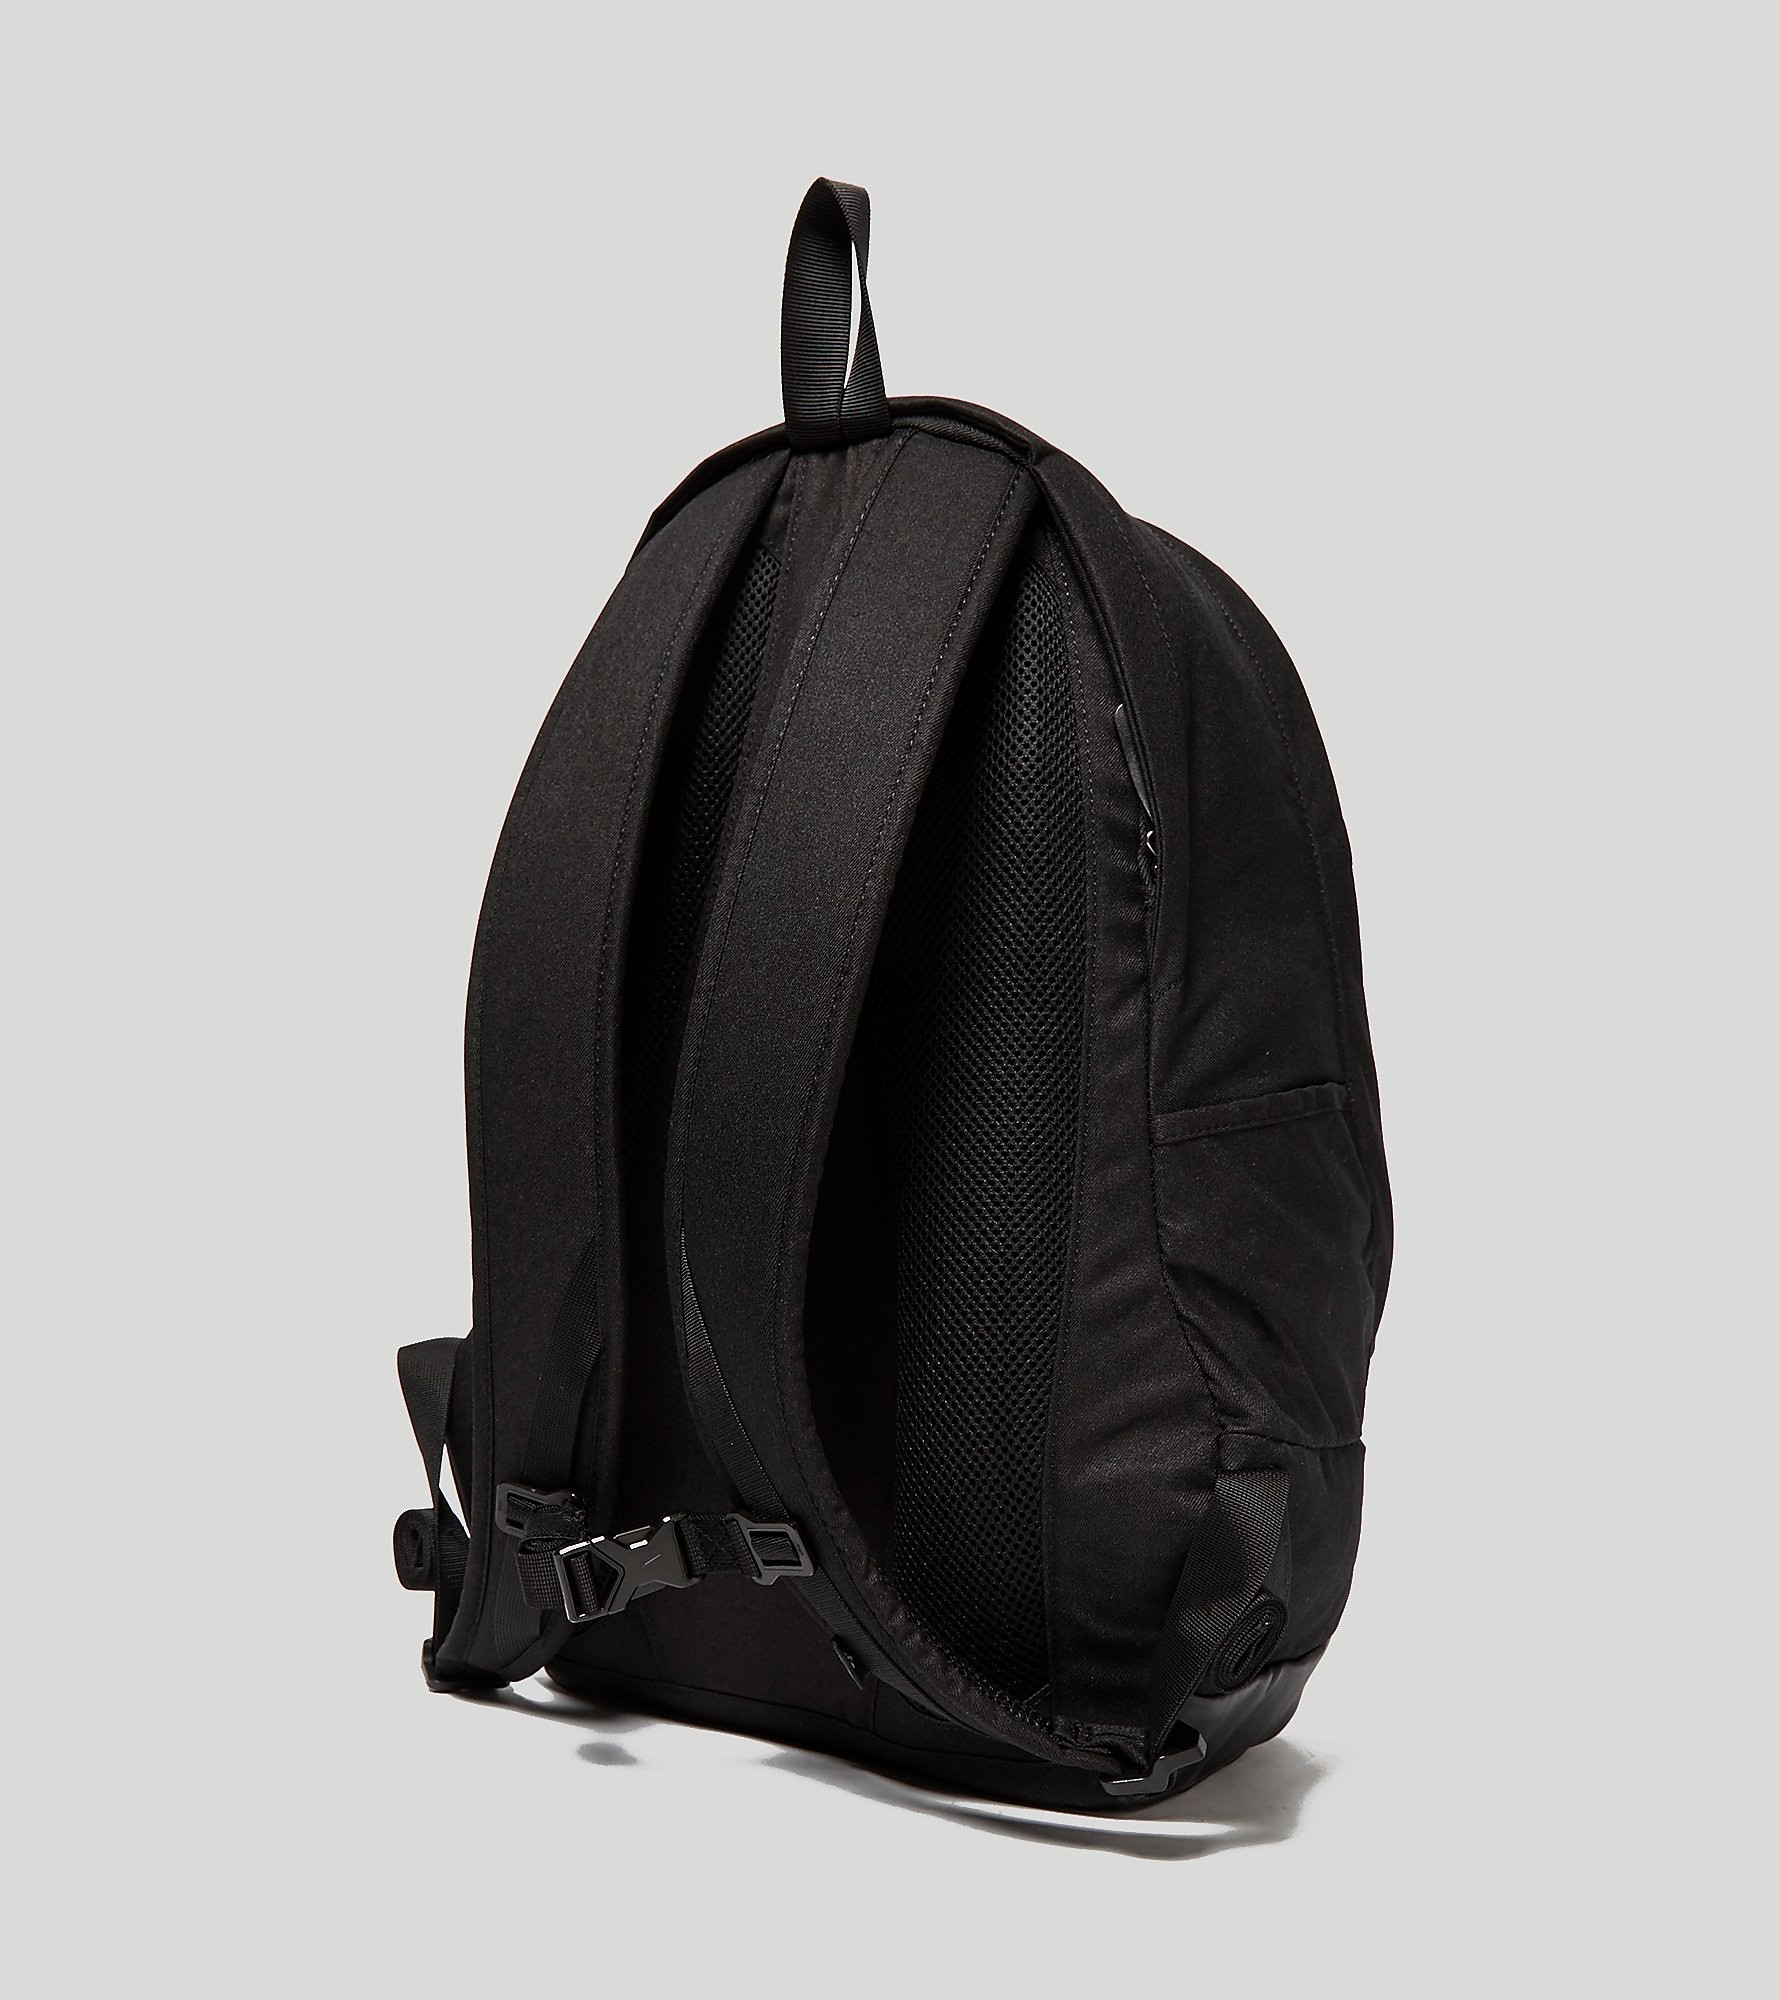 Nike Cheyenne Premium Backpack